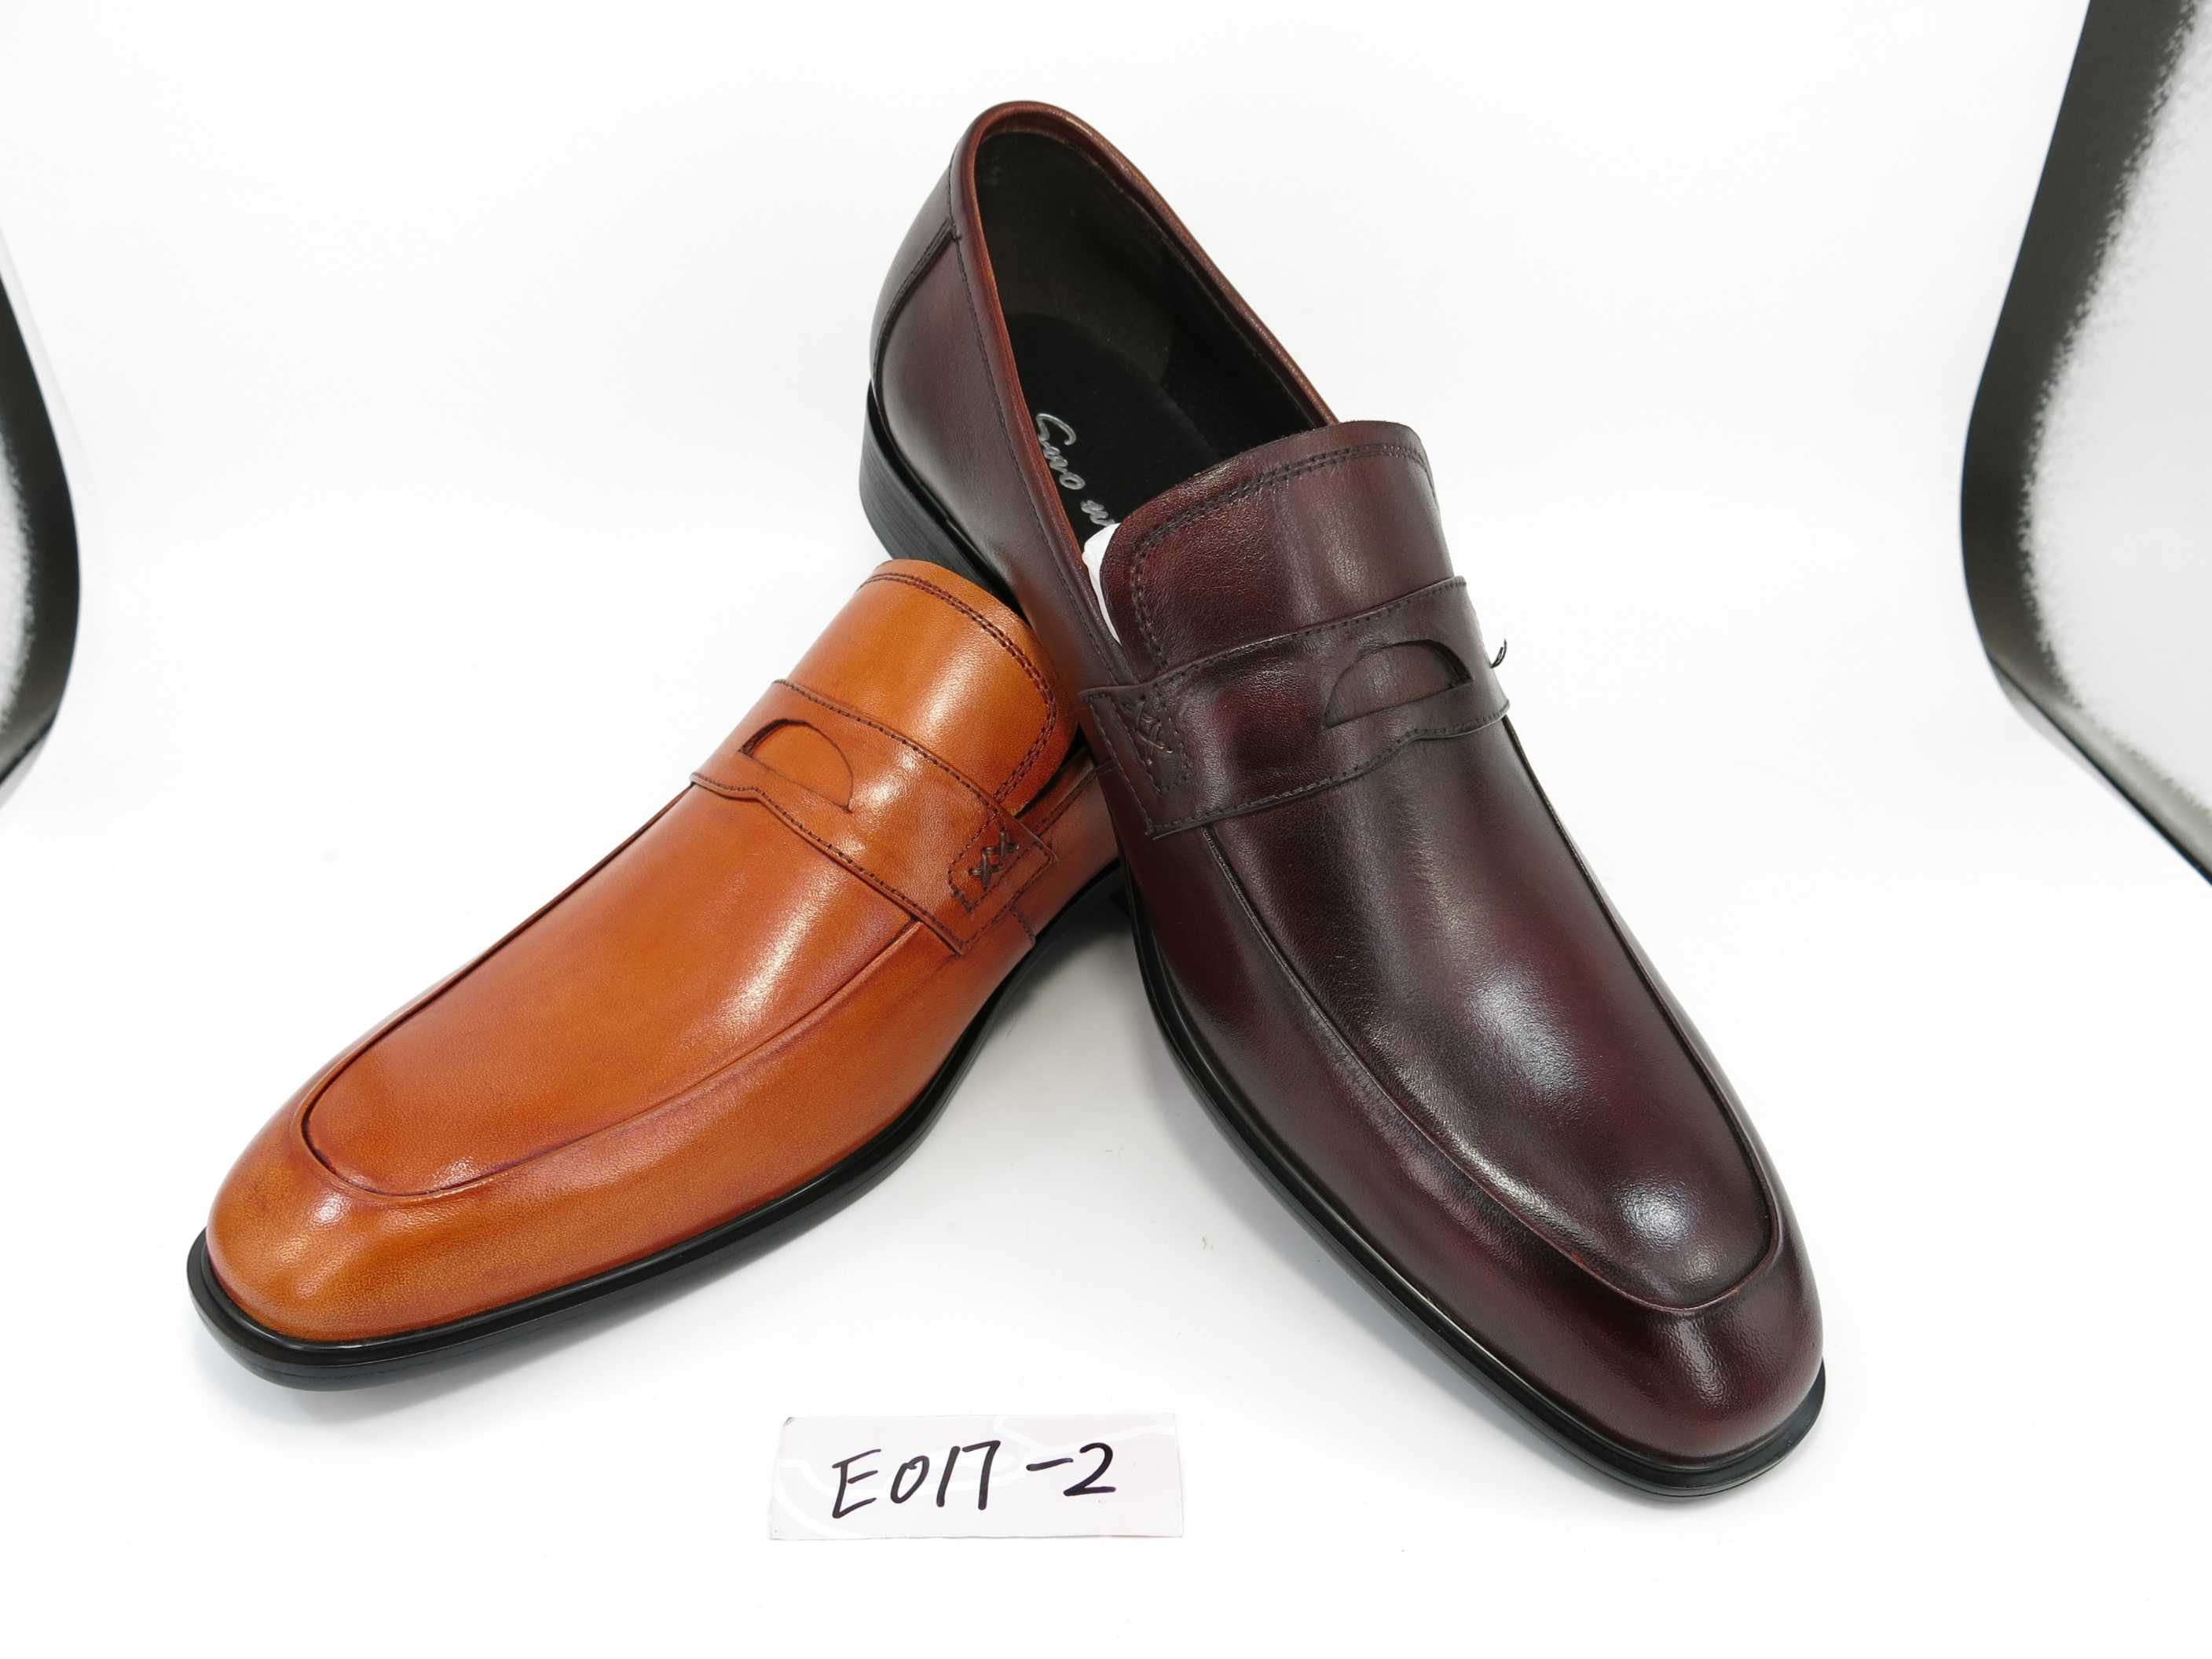 2017 newest real leather luxury shoes for men